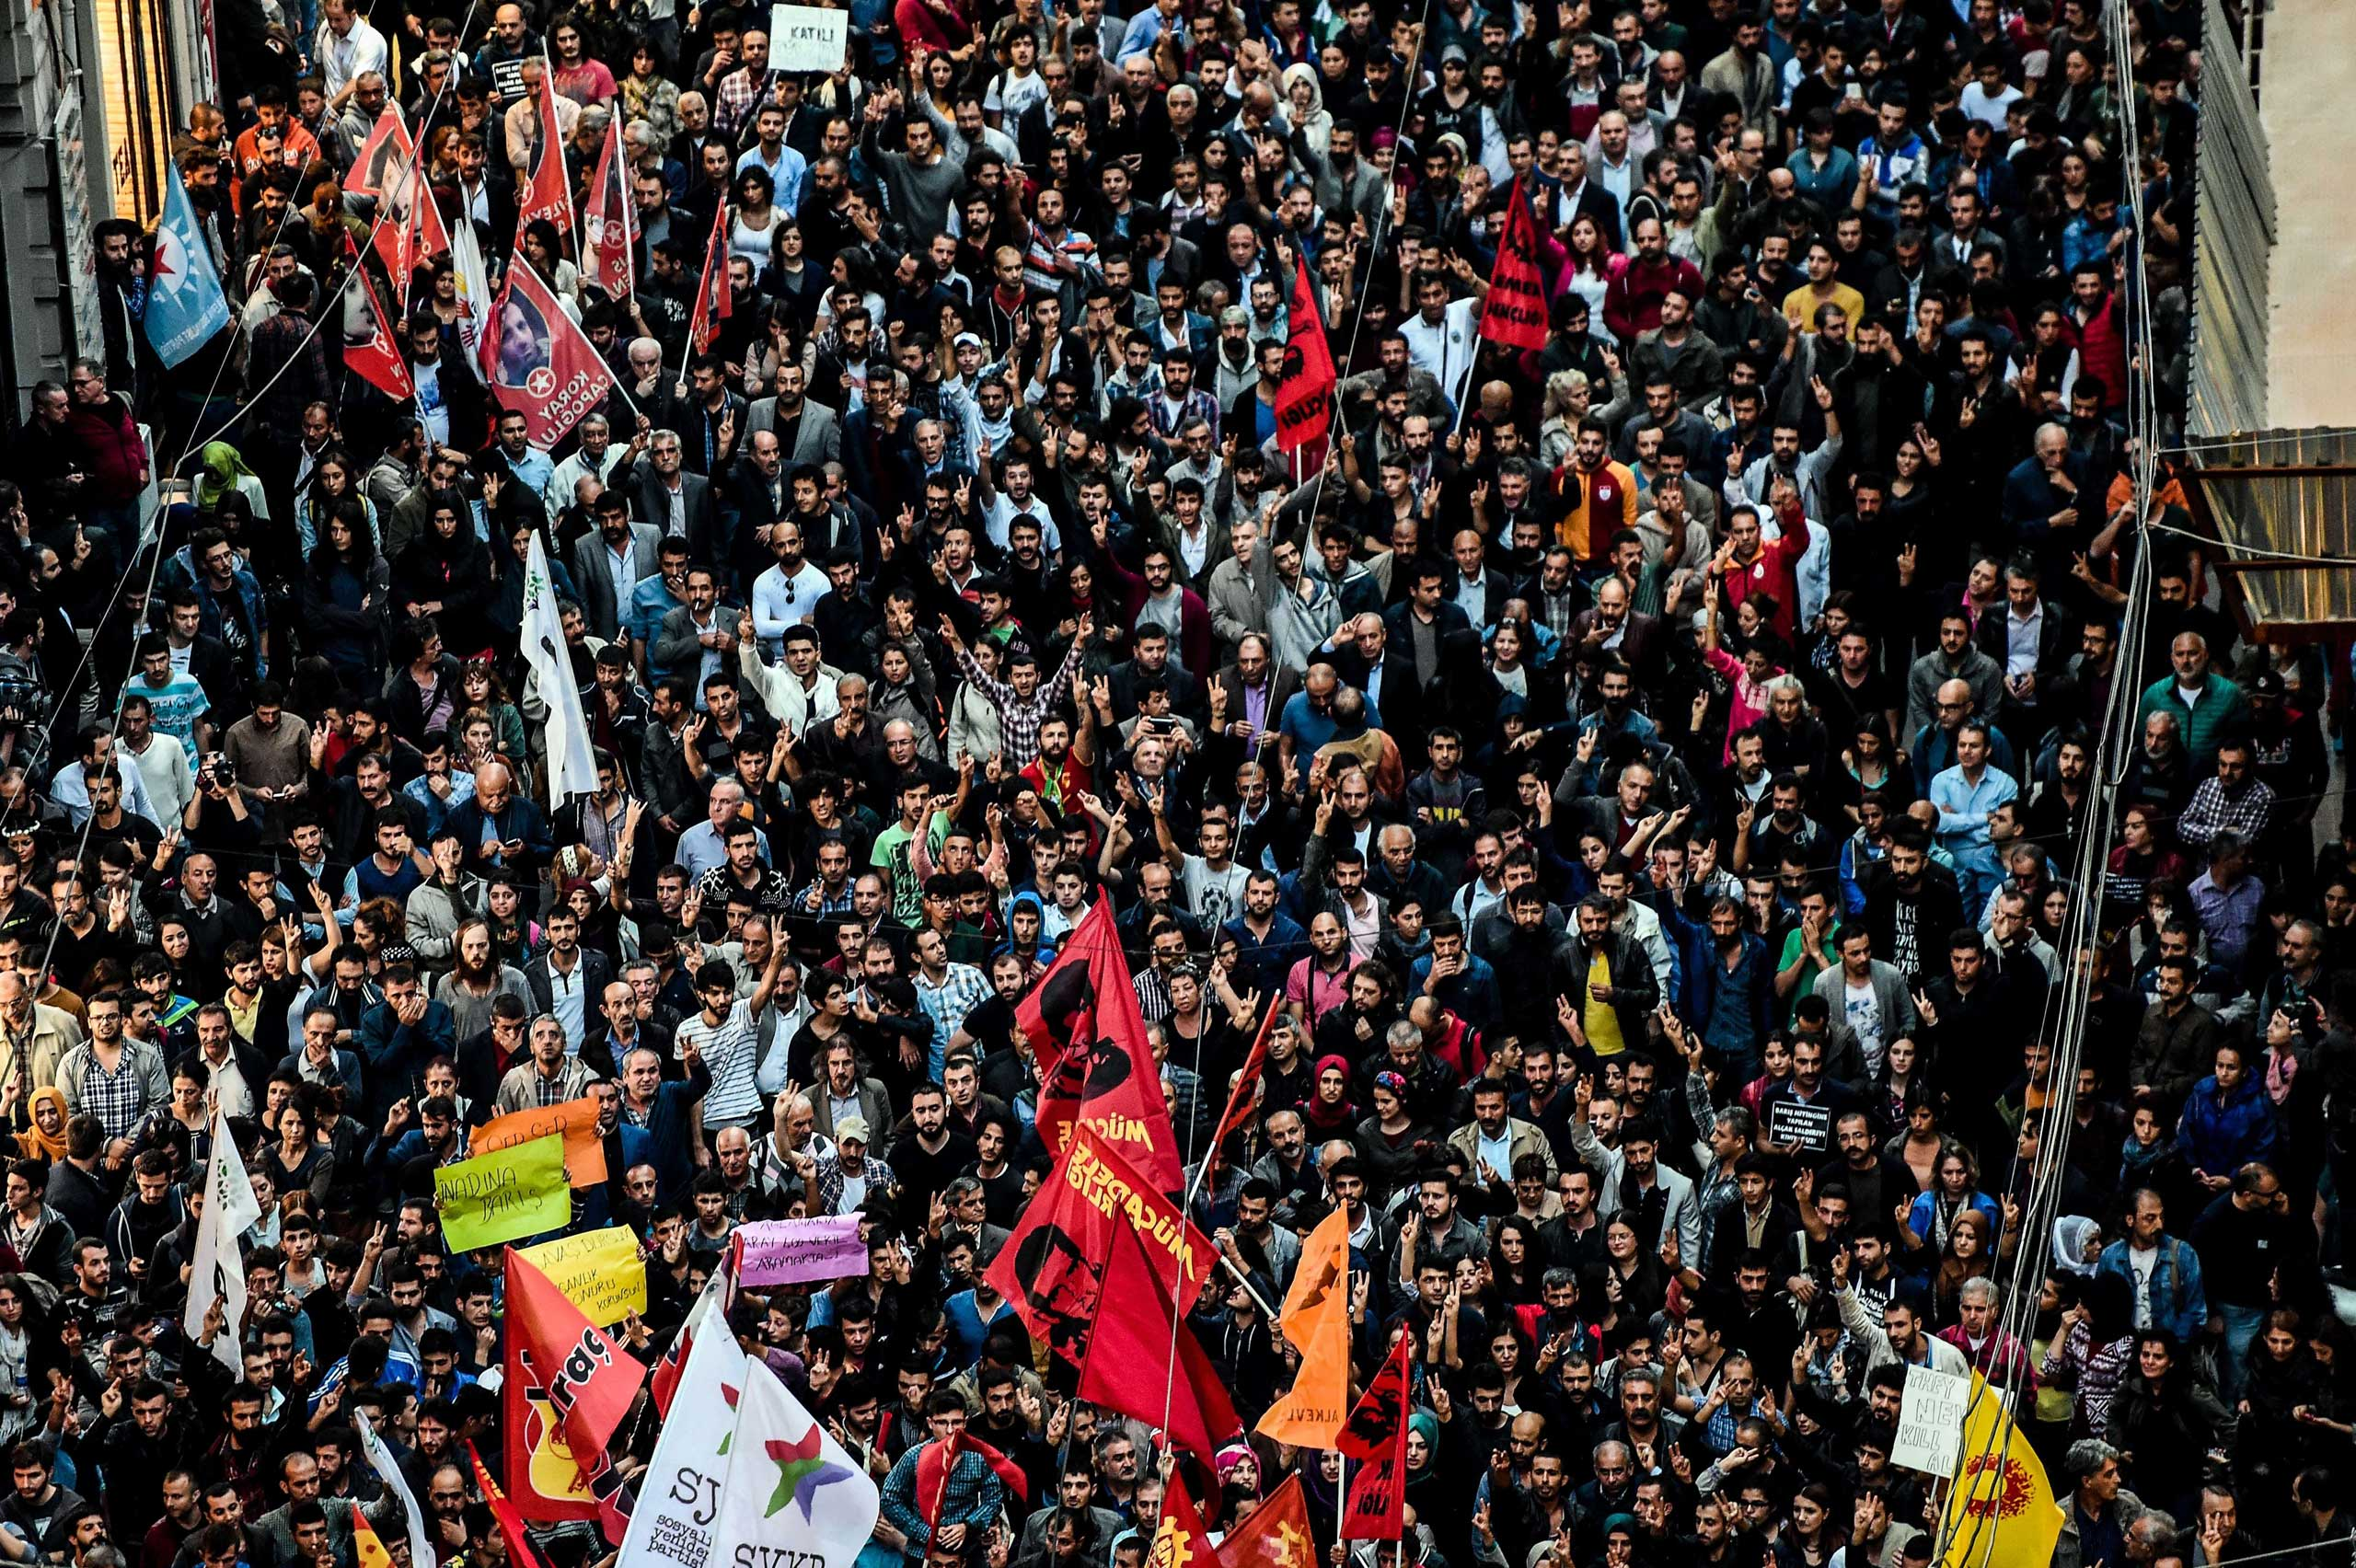 Thousands of protesters take part in a march against the deadly attack earlier in Ankara on Oct. 10, 2015 at the Istiklal avenue in Istanbul.